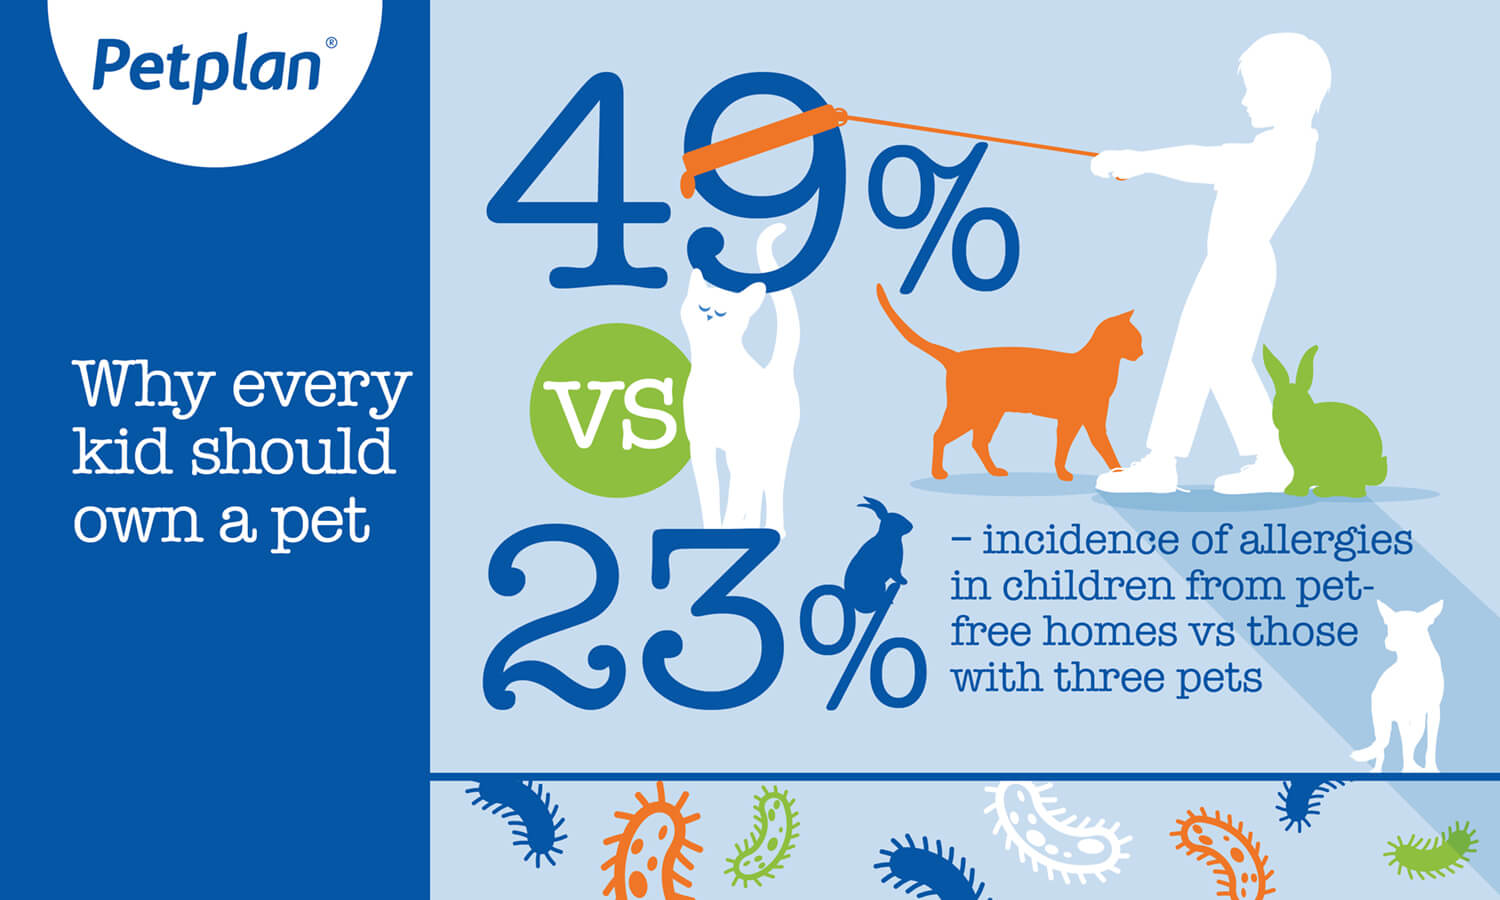 Infographic: 49% vs 23% - incidence of allergies in children from pet-free homes vs those with three pets img